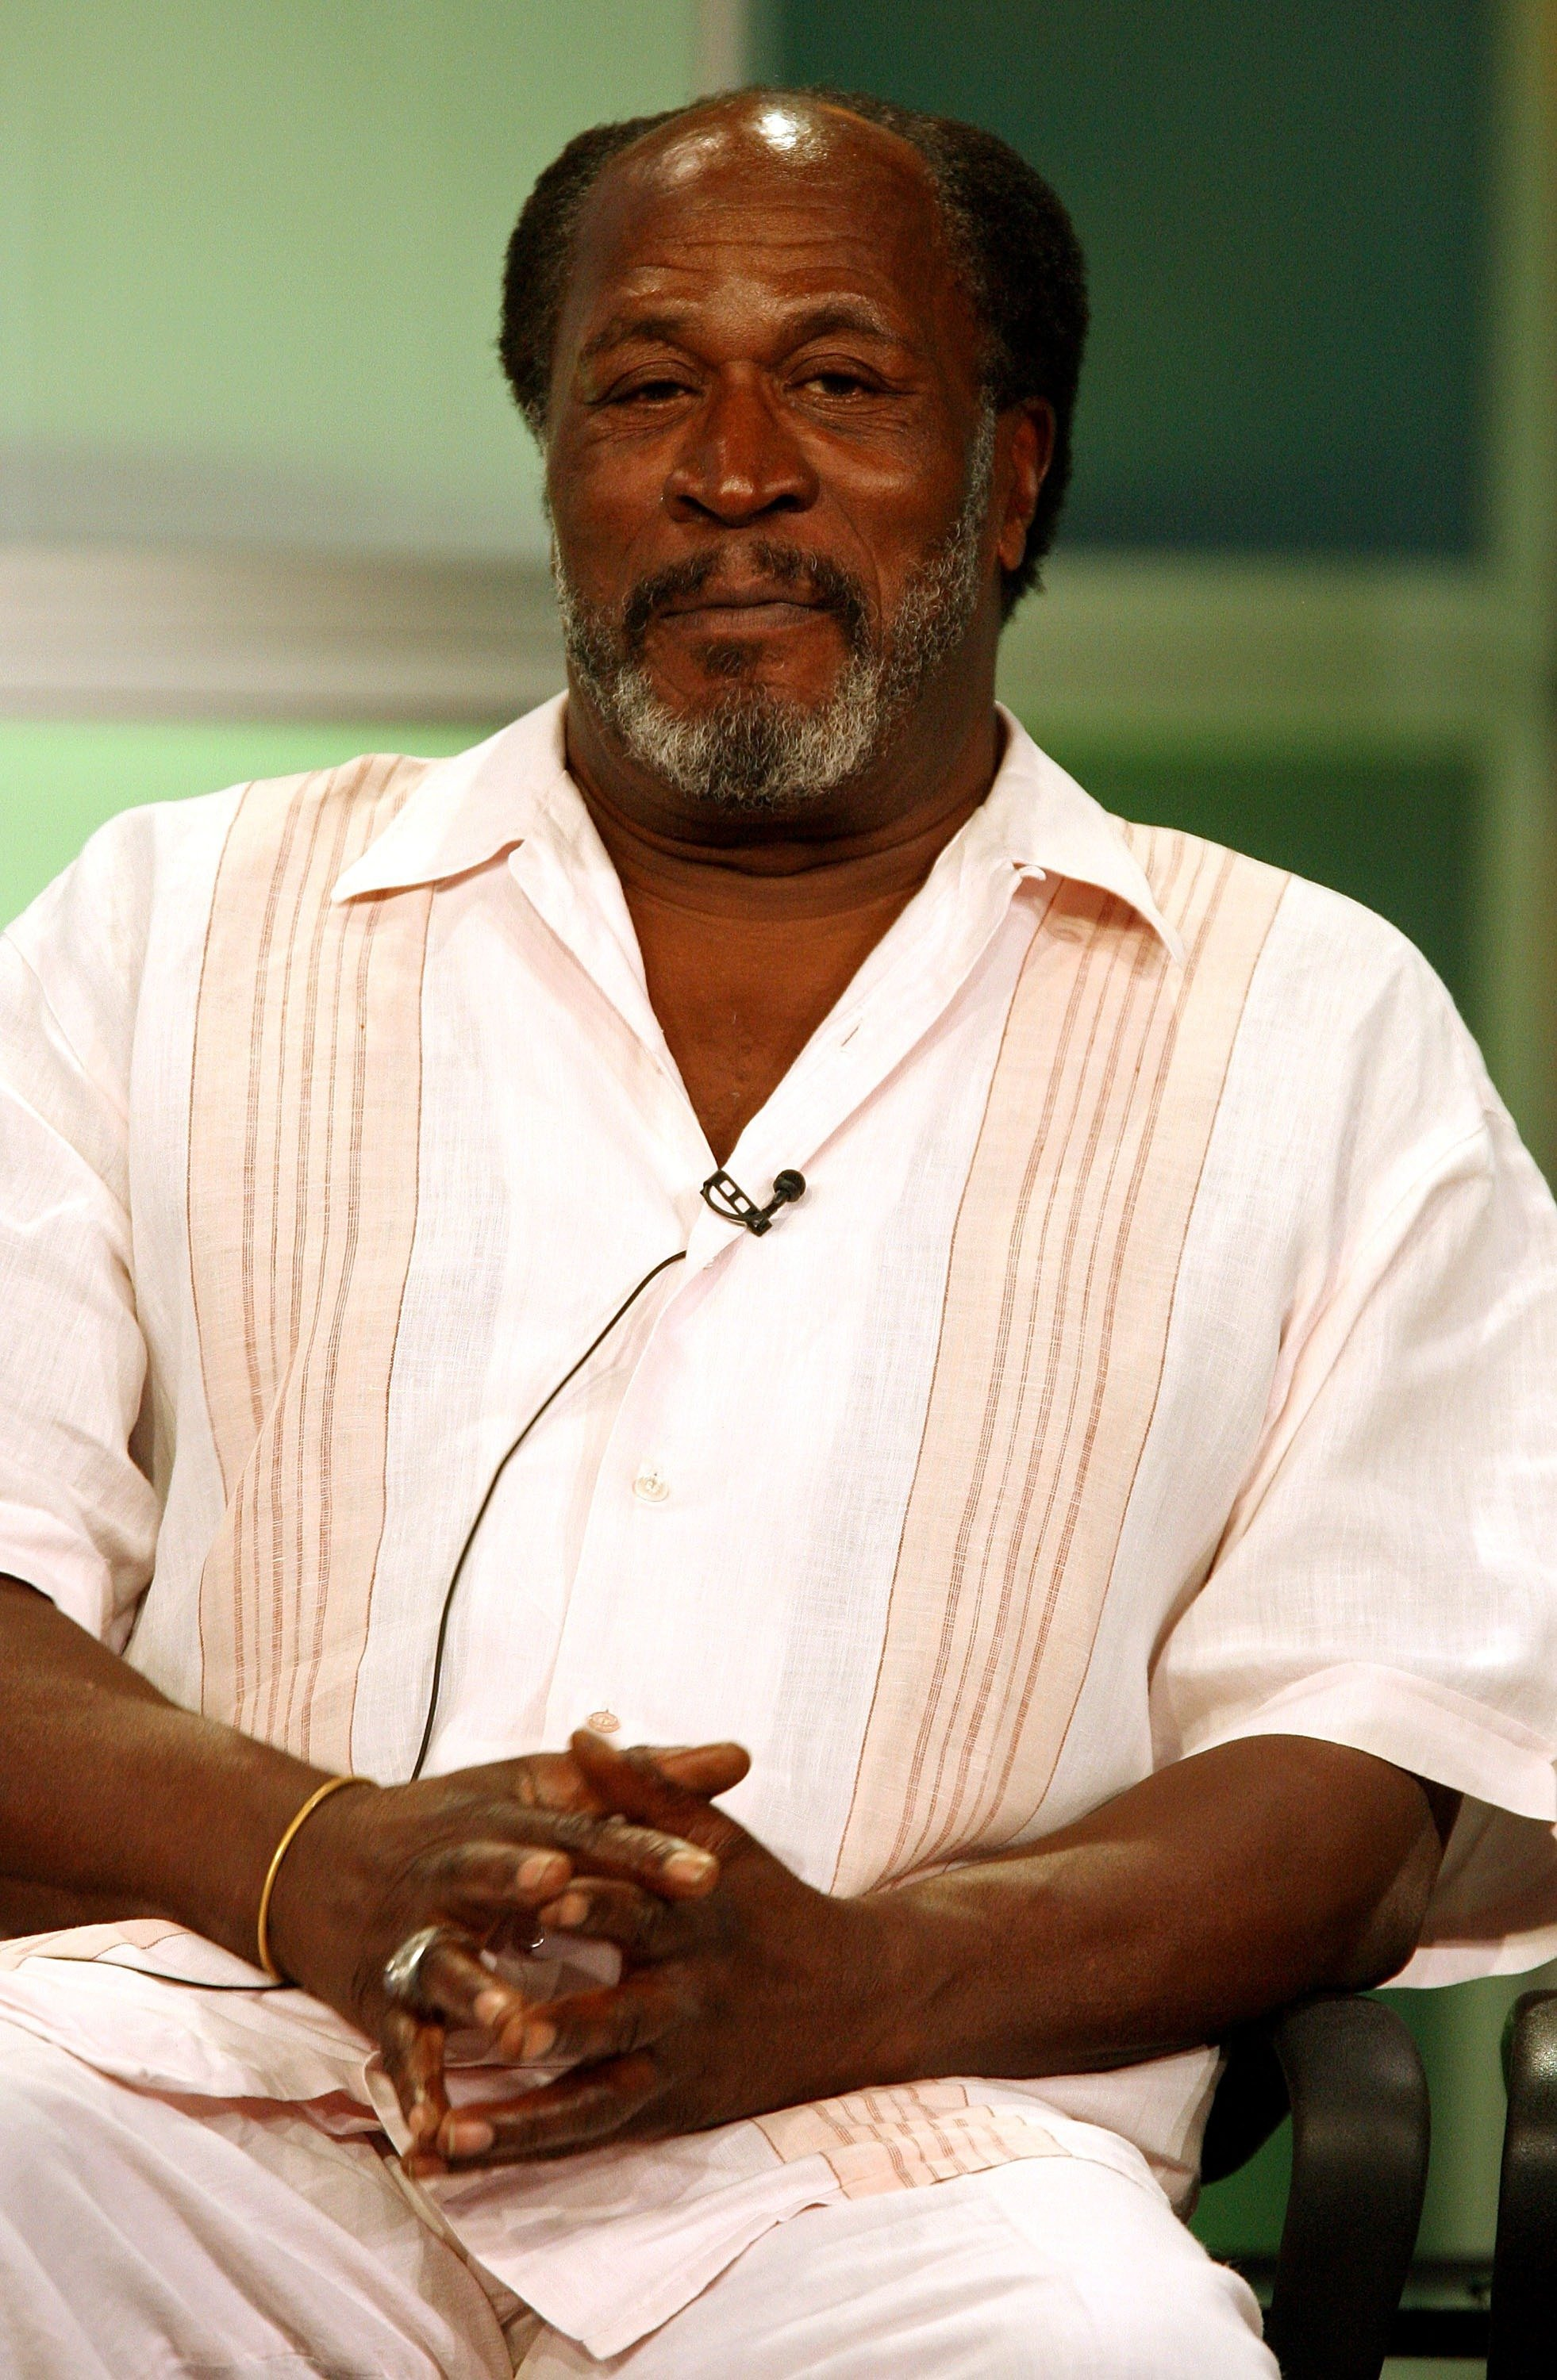 """John Amos of """"Men In Trees"""" speaks during the 2007 Summer Television Critics Association Press Tour for ABC held at the Beverly Hilton hotel on July 26, 2007 